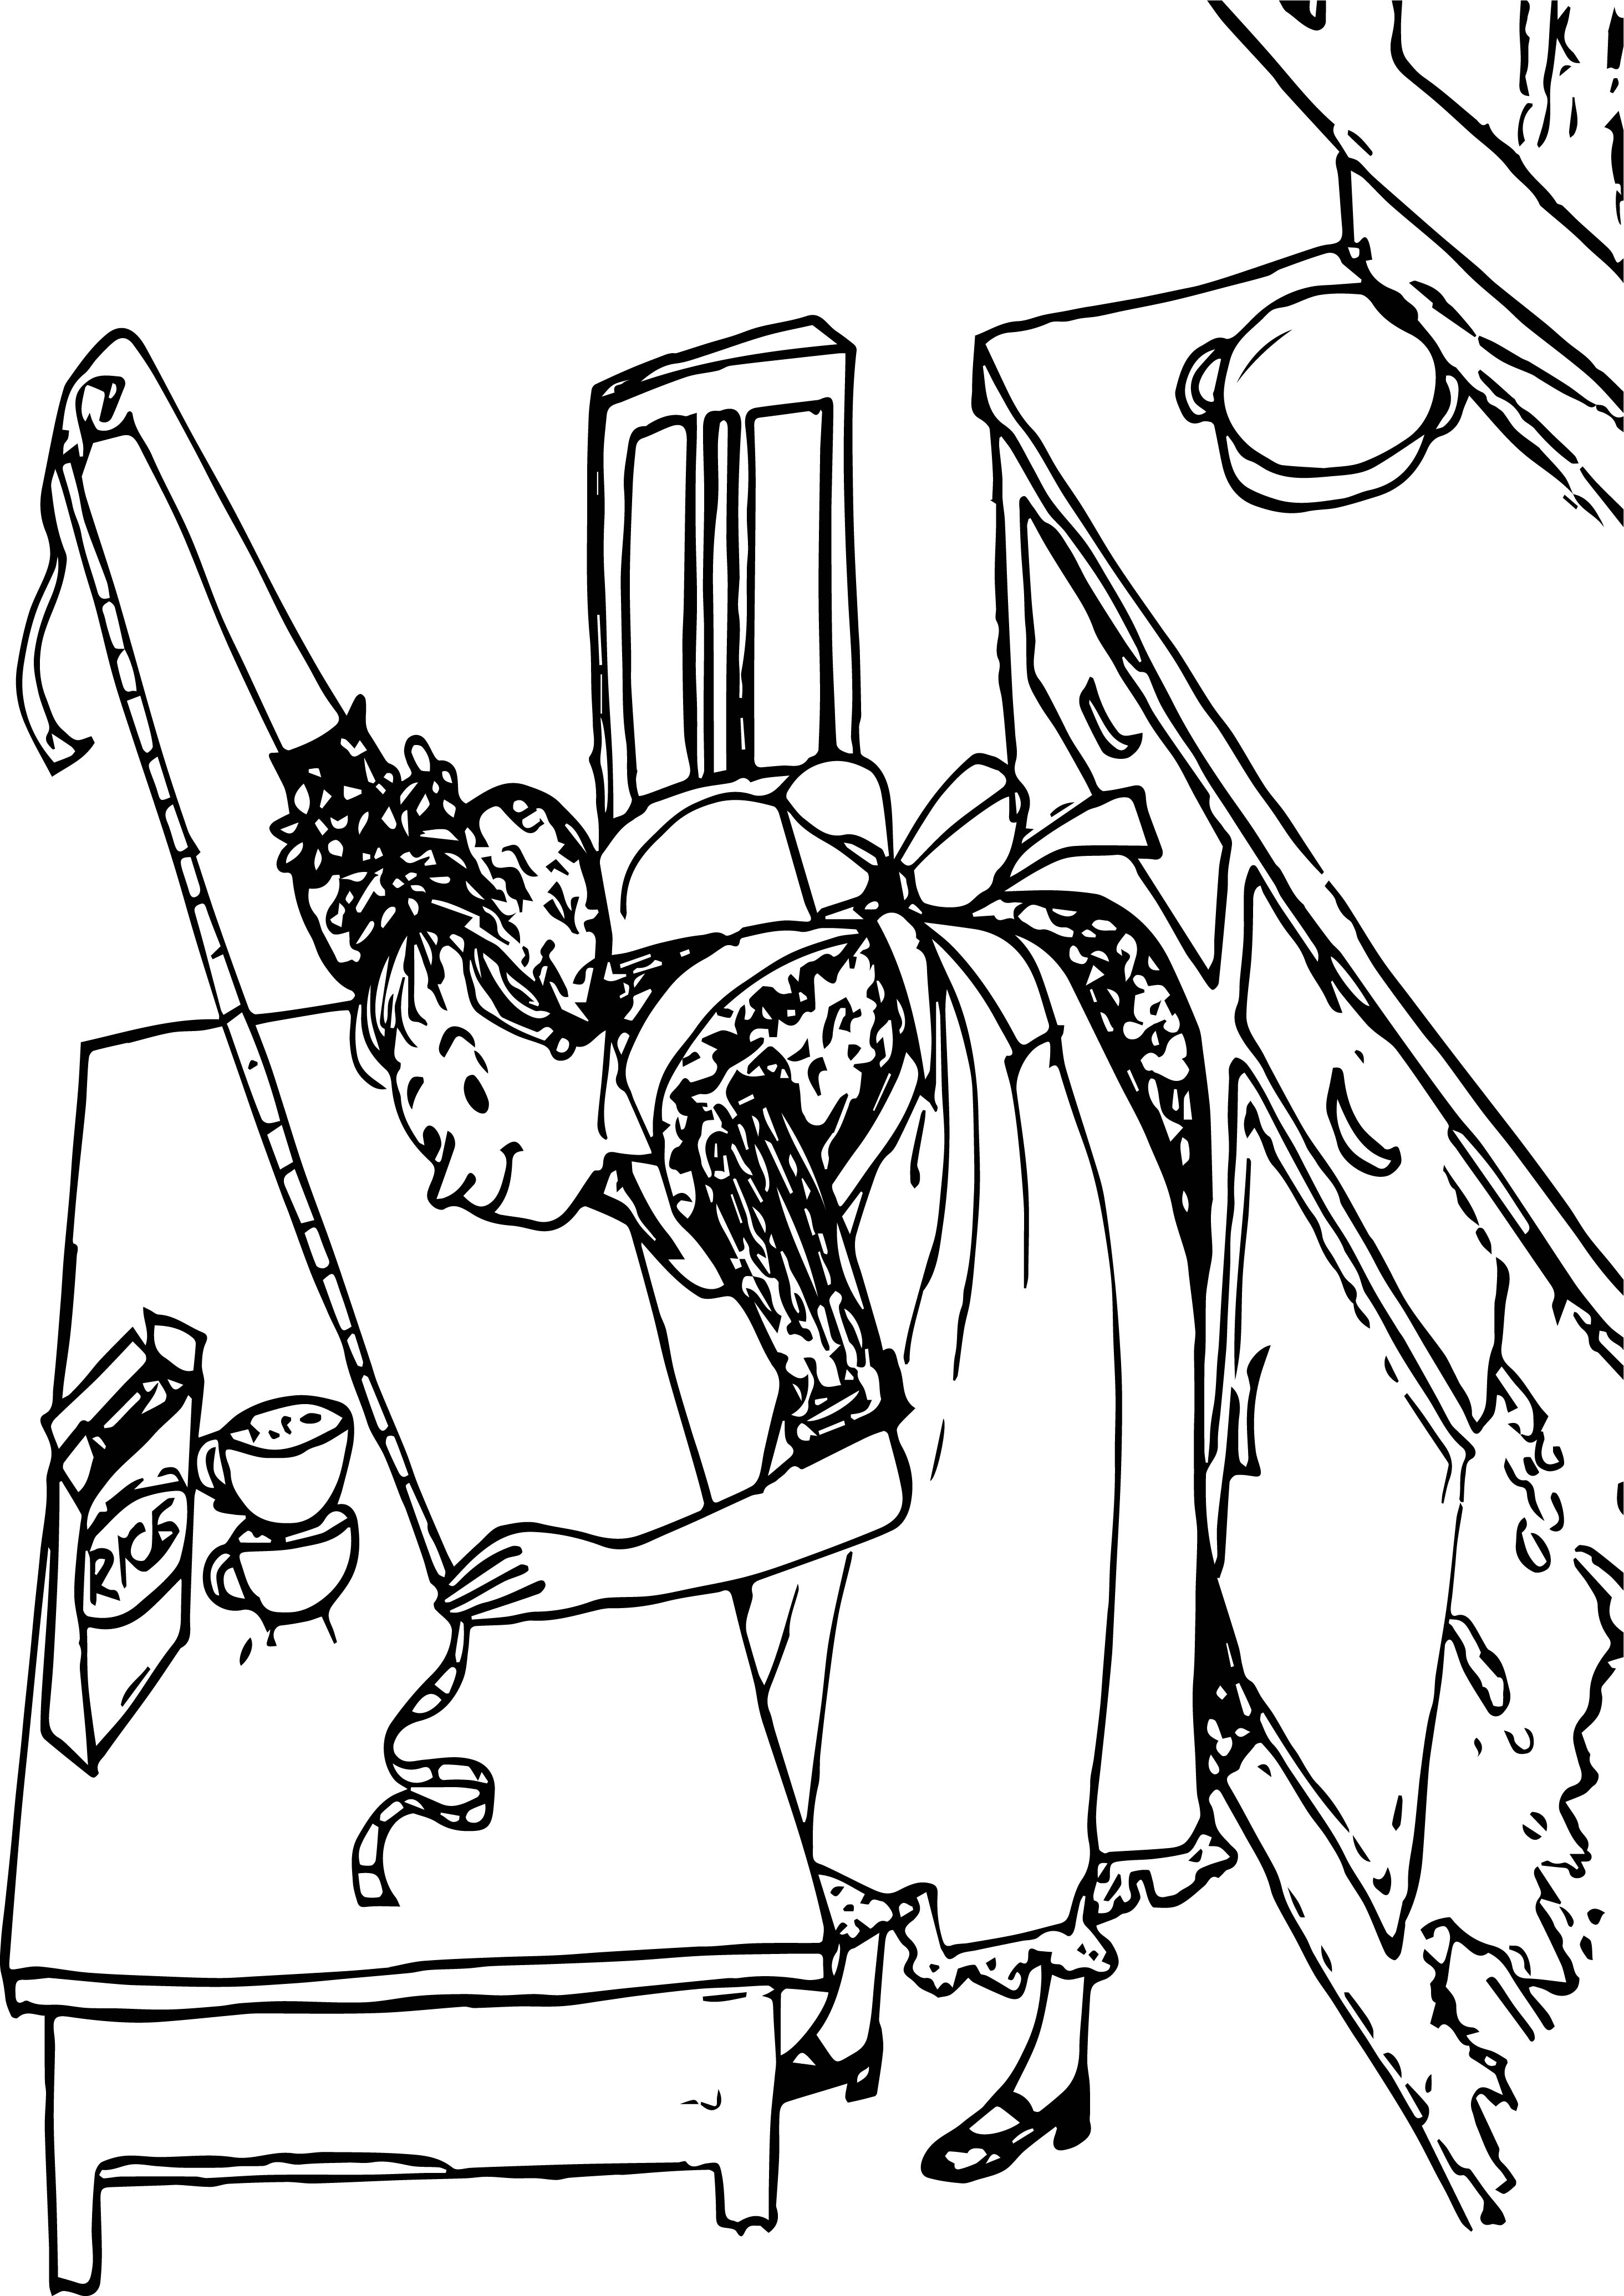 rice coloring pages for kids | Amelia Bedelia Rice Coloring Page | Wecoloringpage.com